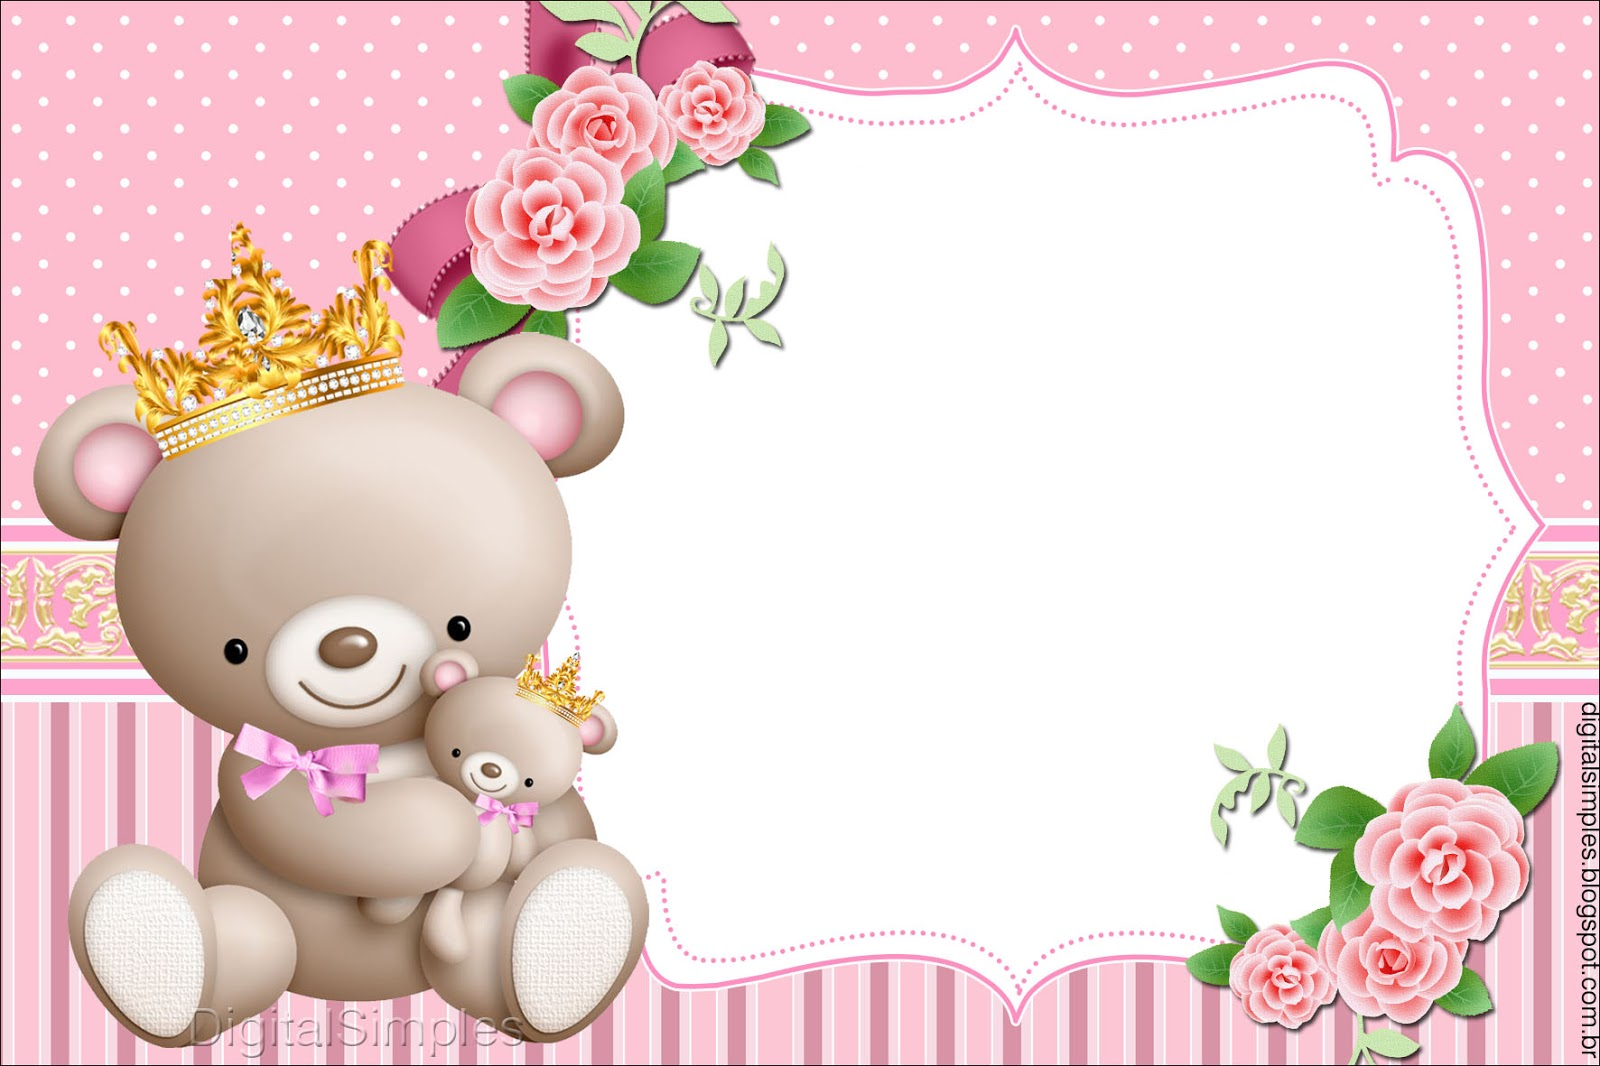 Princes Teddy Bear Free Printable Invitations Boxes And Free